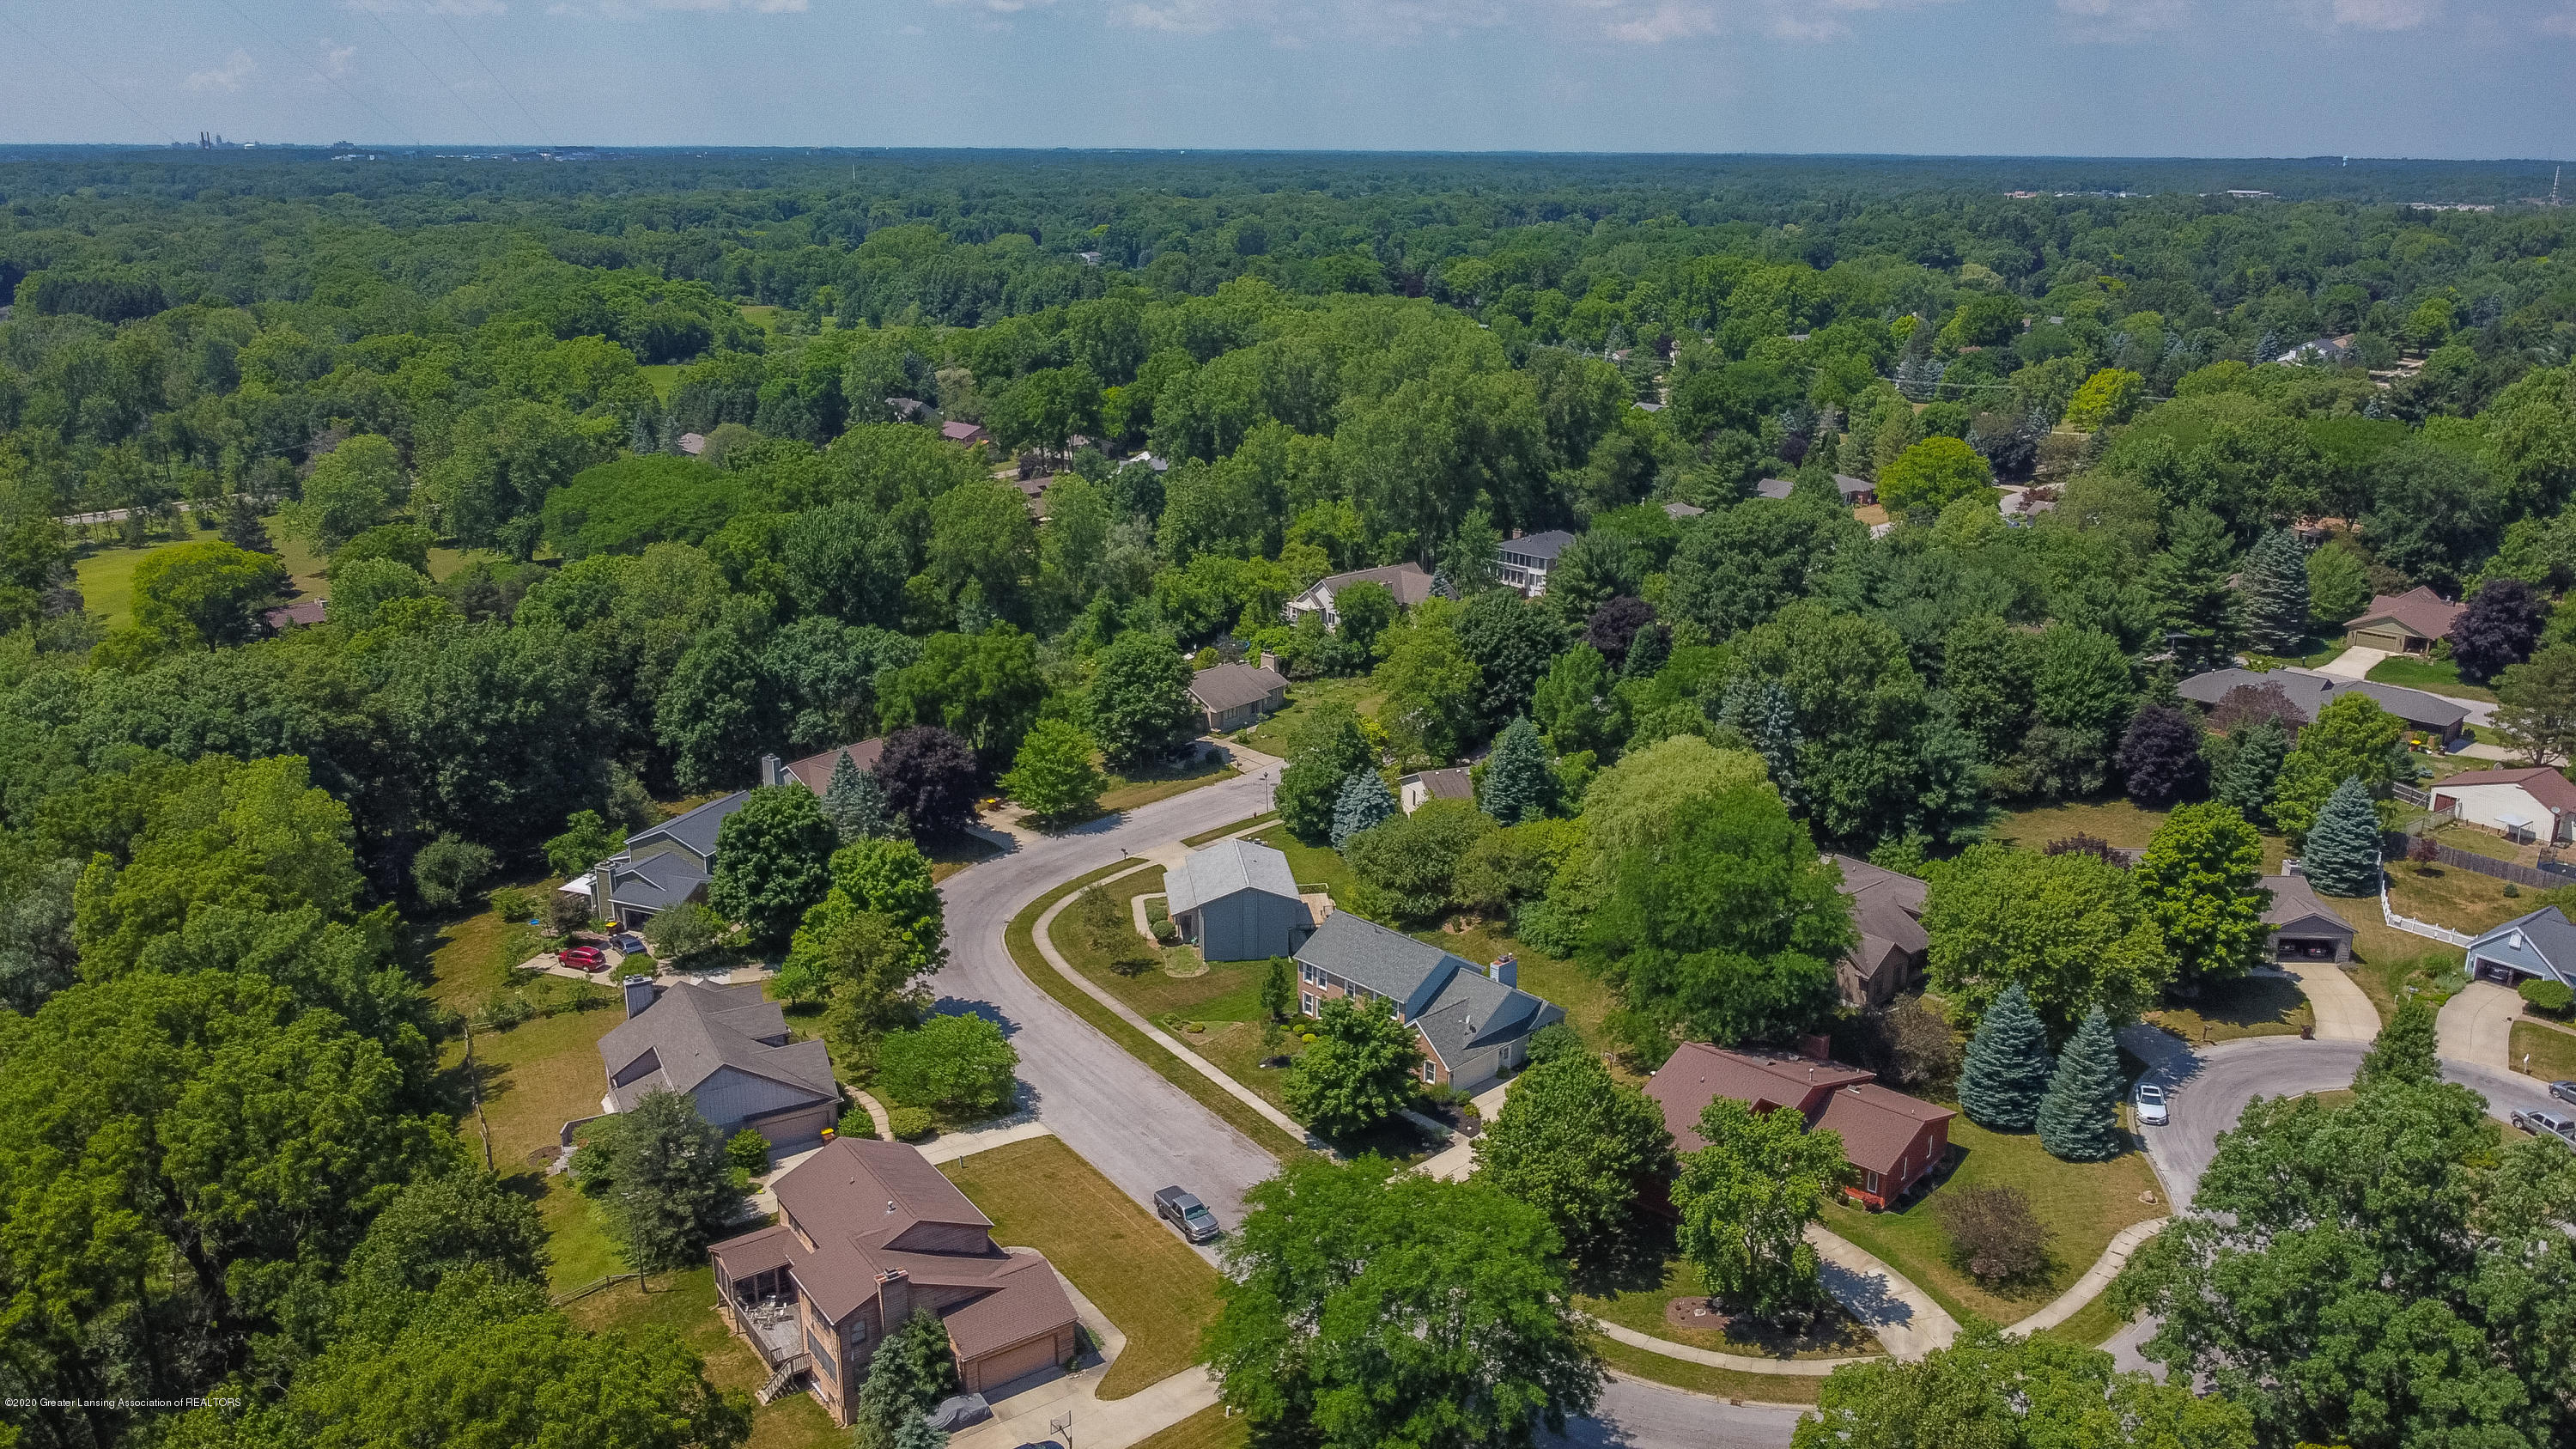 4194 Indian Glen Dr - Aerial View - 51